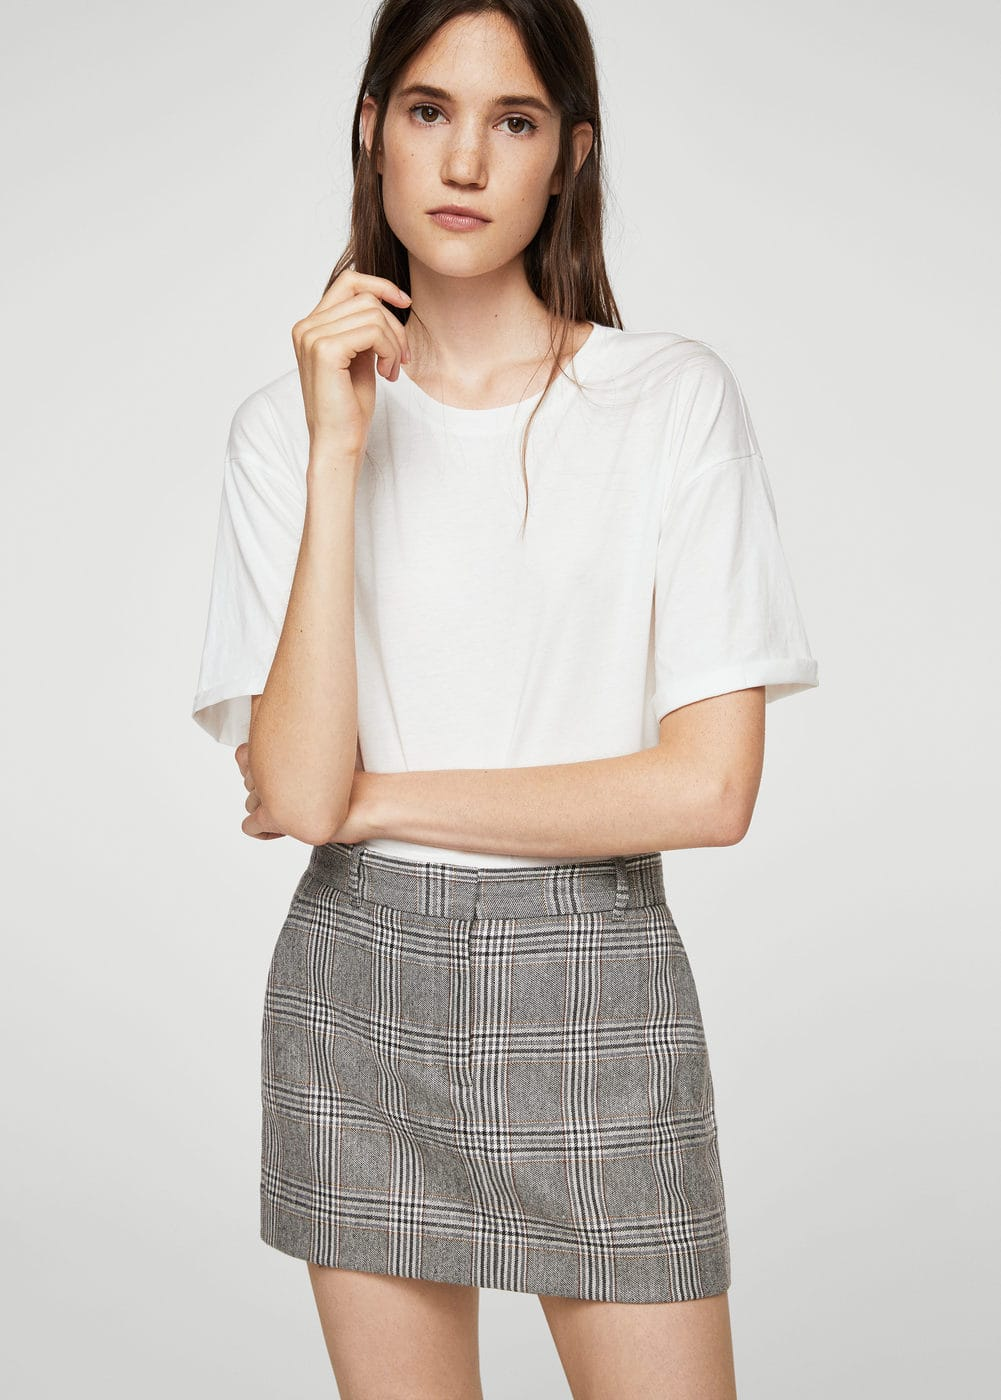 Prince of wales wool-blend skirt | MANGO